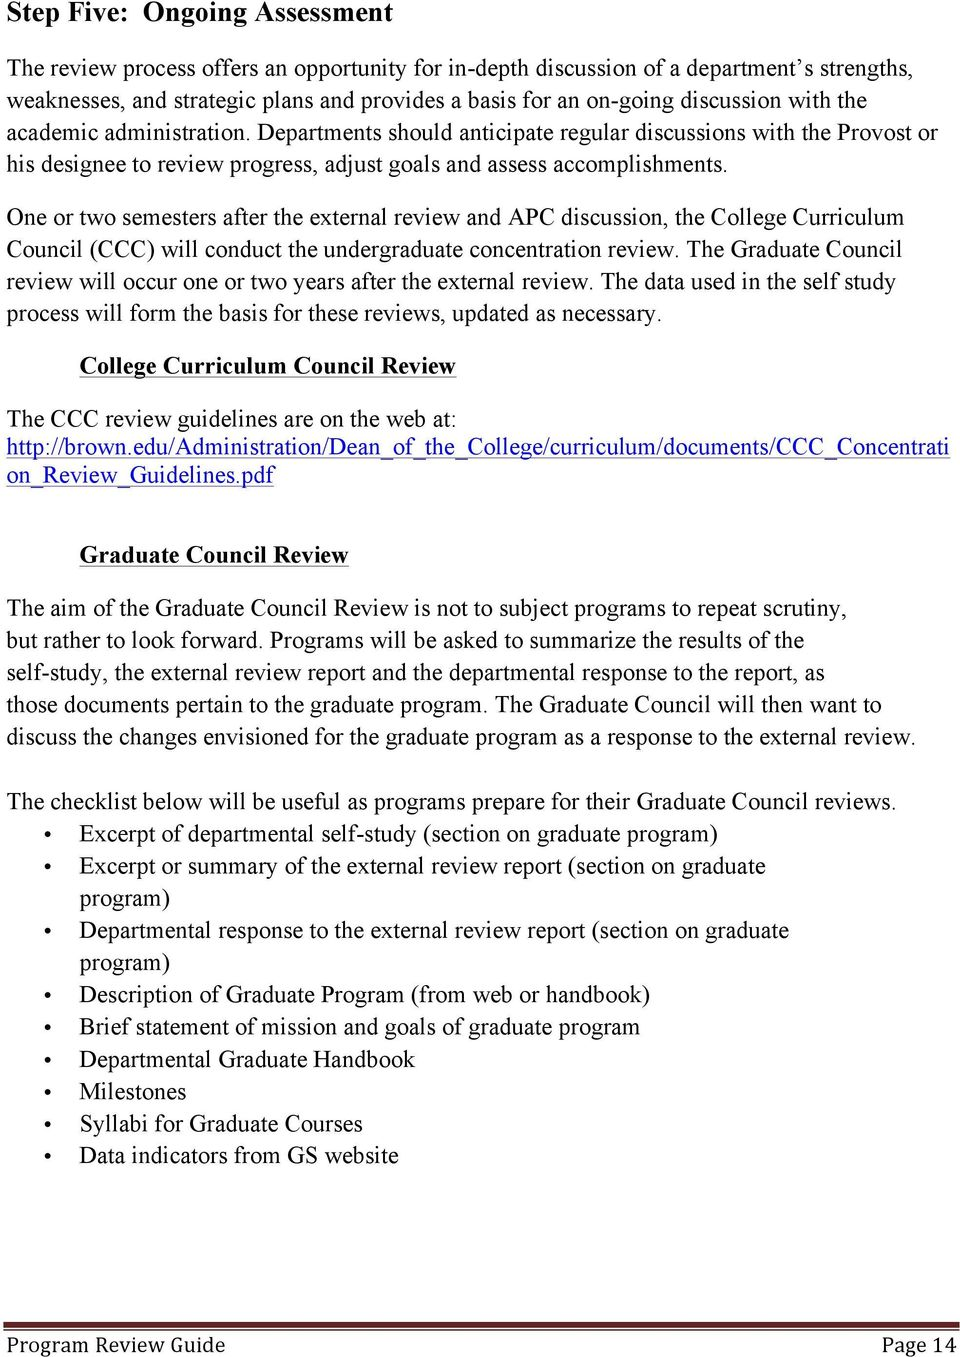 One or two semesters after the external review and APC discussion, the College Curriculum Council (CCC) will conduct the undergraduate concentration review.